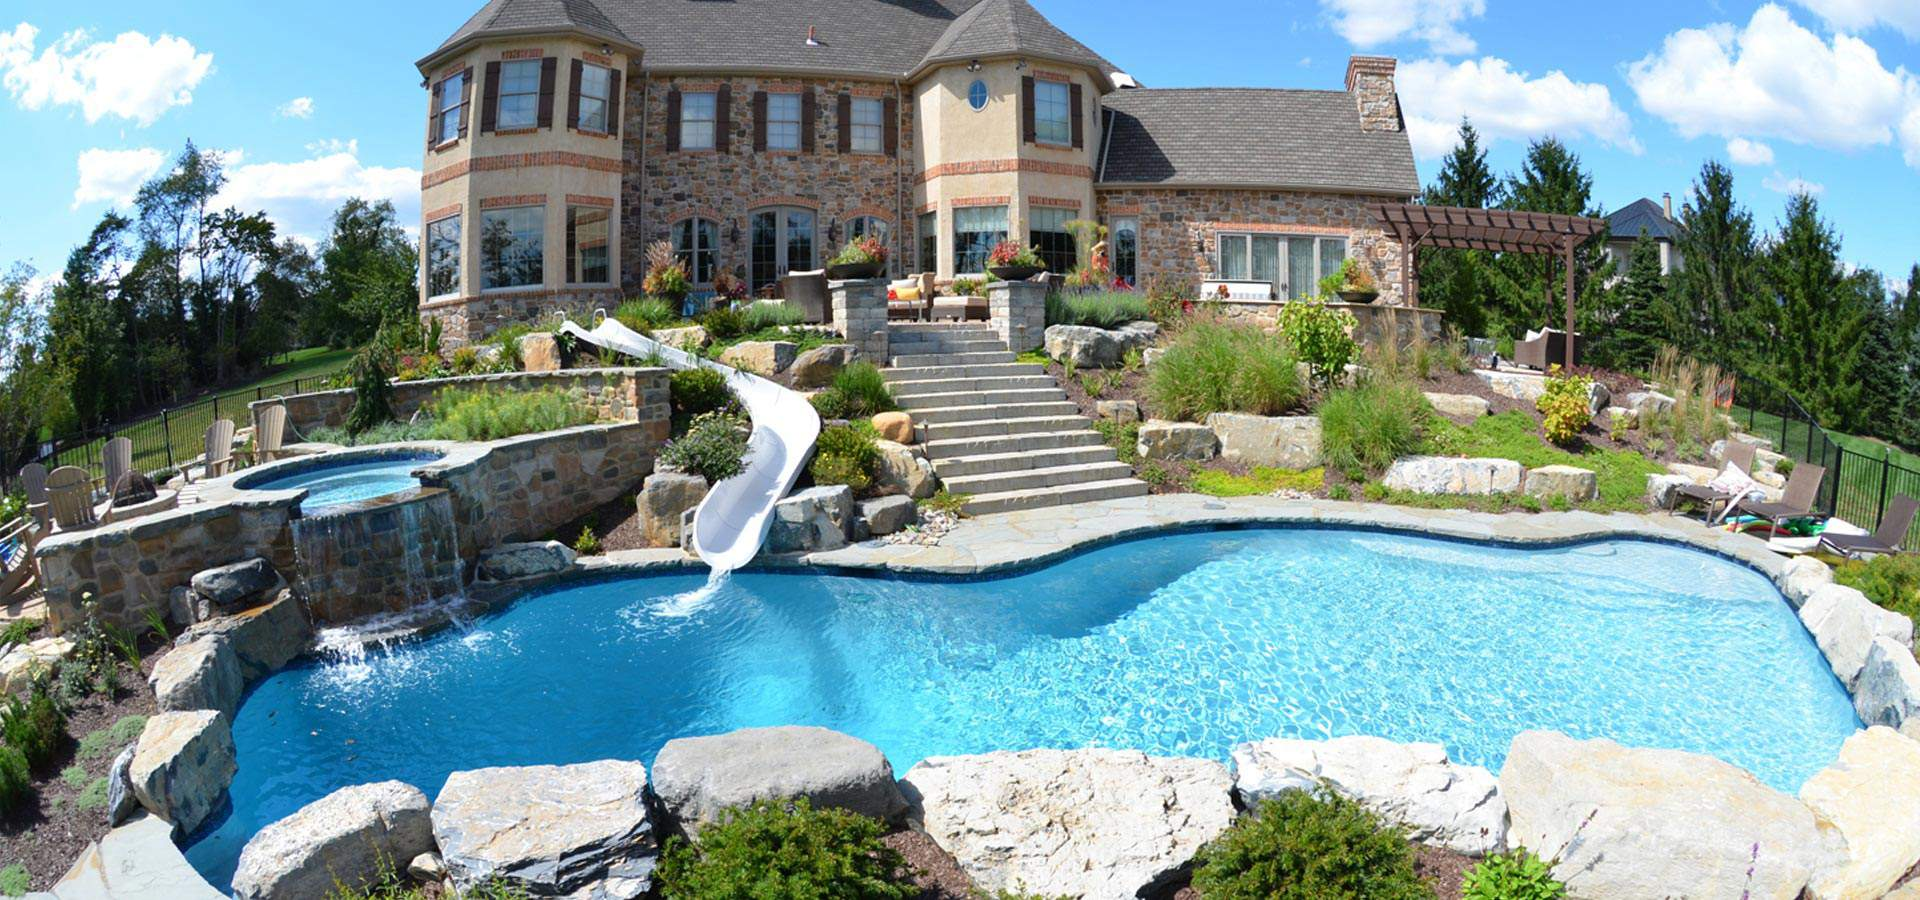 1 pool builder in lehigh valley pa best inground pools for How much water is in a swimming pool